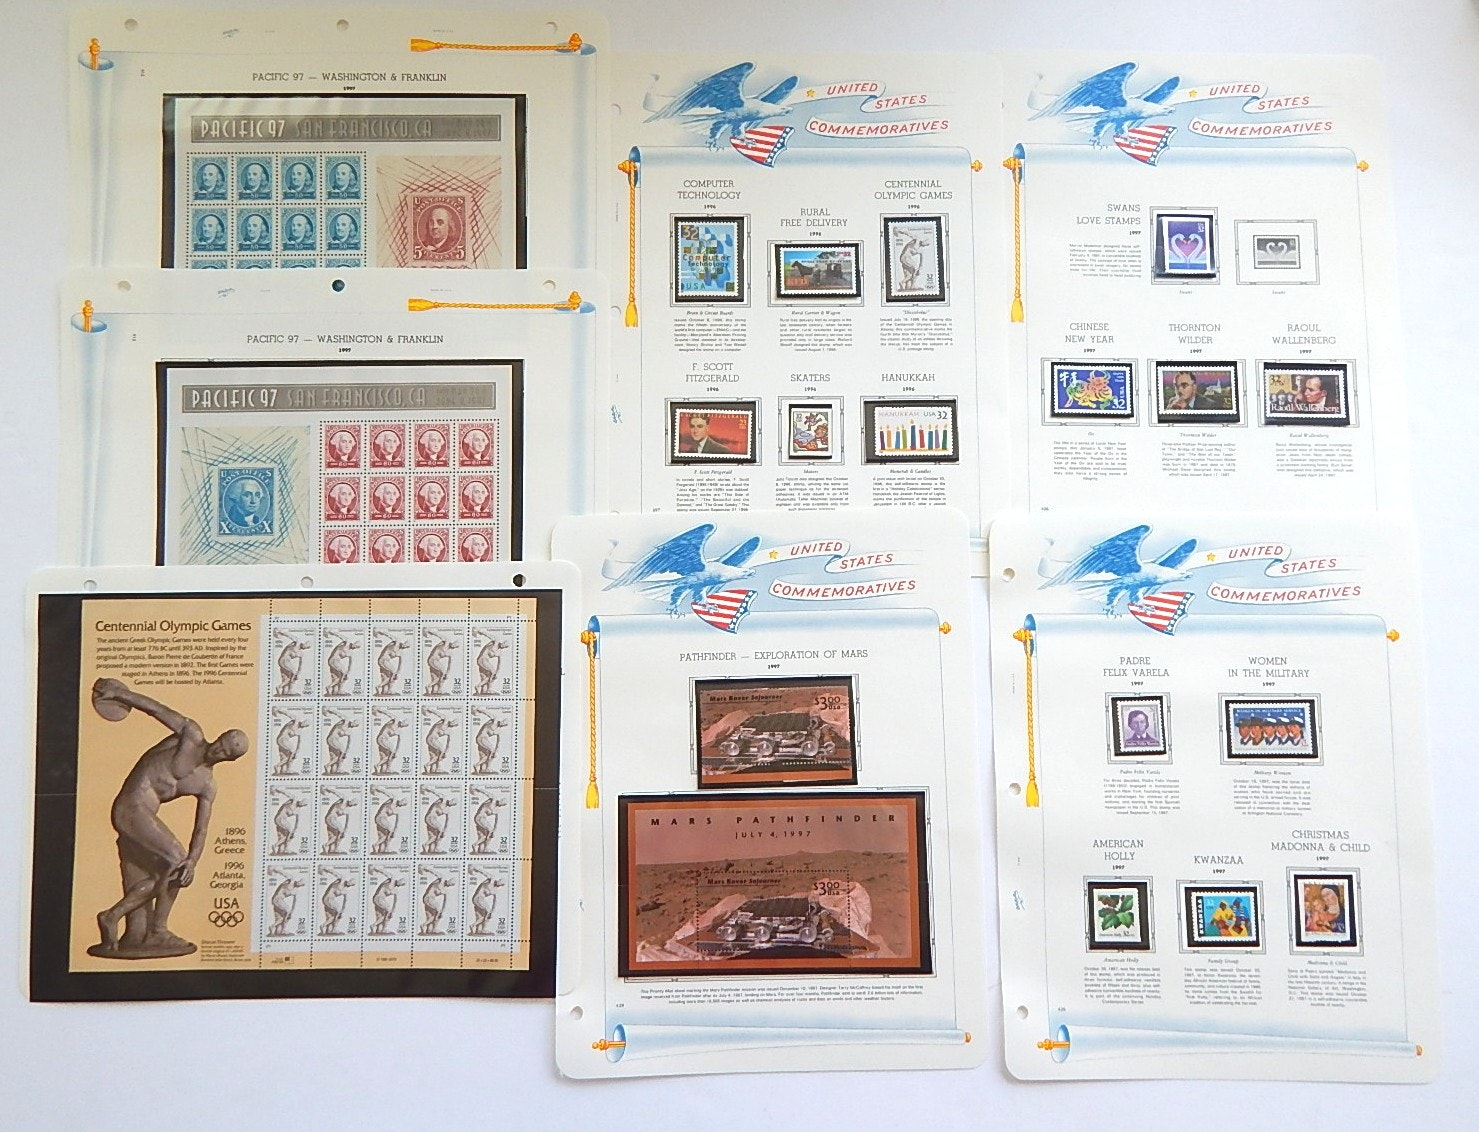 United States Commemorative Stamps with Olympics, Mars, Pacific 97, Assorted